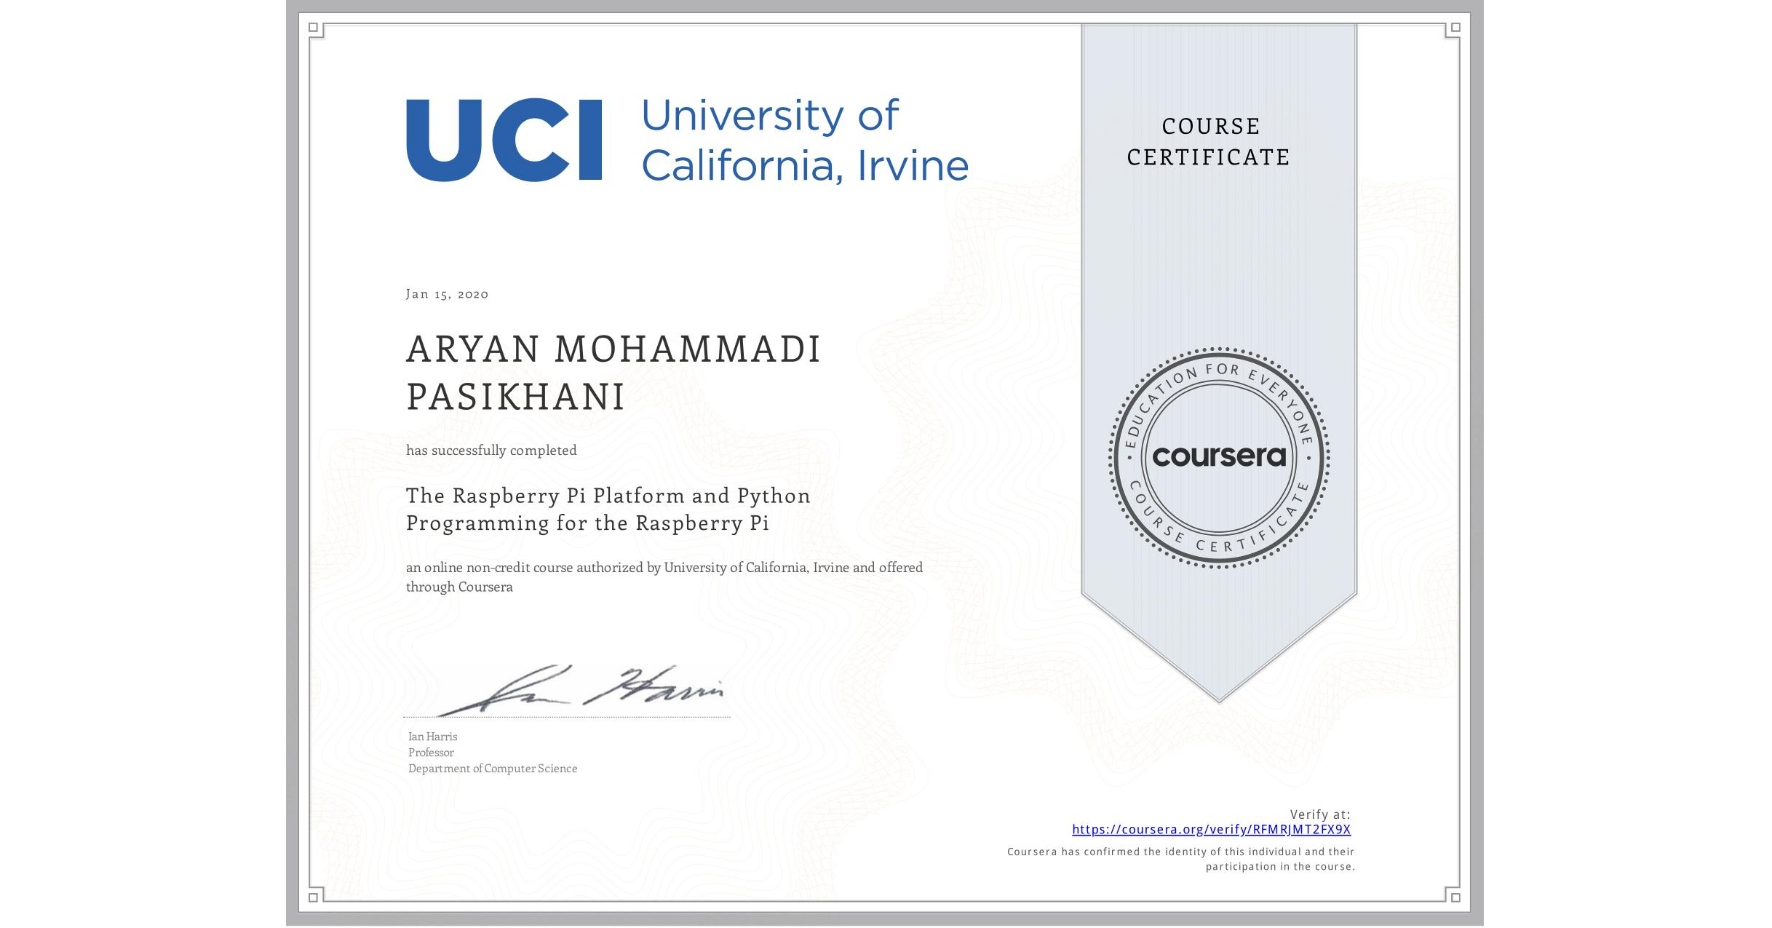 View certificate for ARYAN MOHAMMADI PASIKHANI, The Raspberry Pi Platform and Python Programming for the Raspberry Pi, an online non-credit course authorized by University of California, Irvine and offered through Coursera